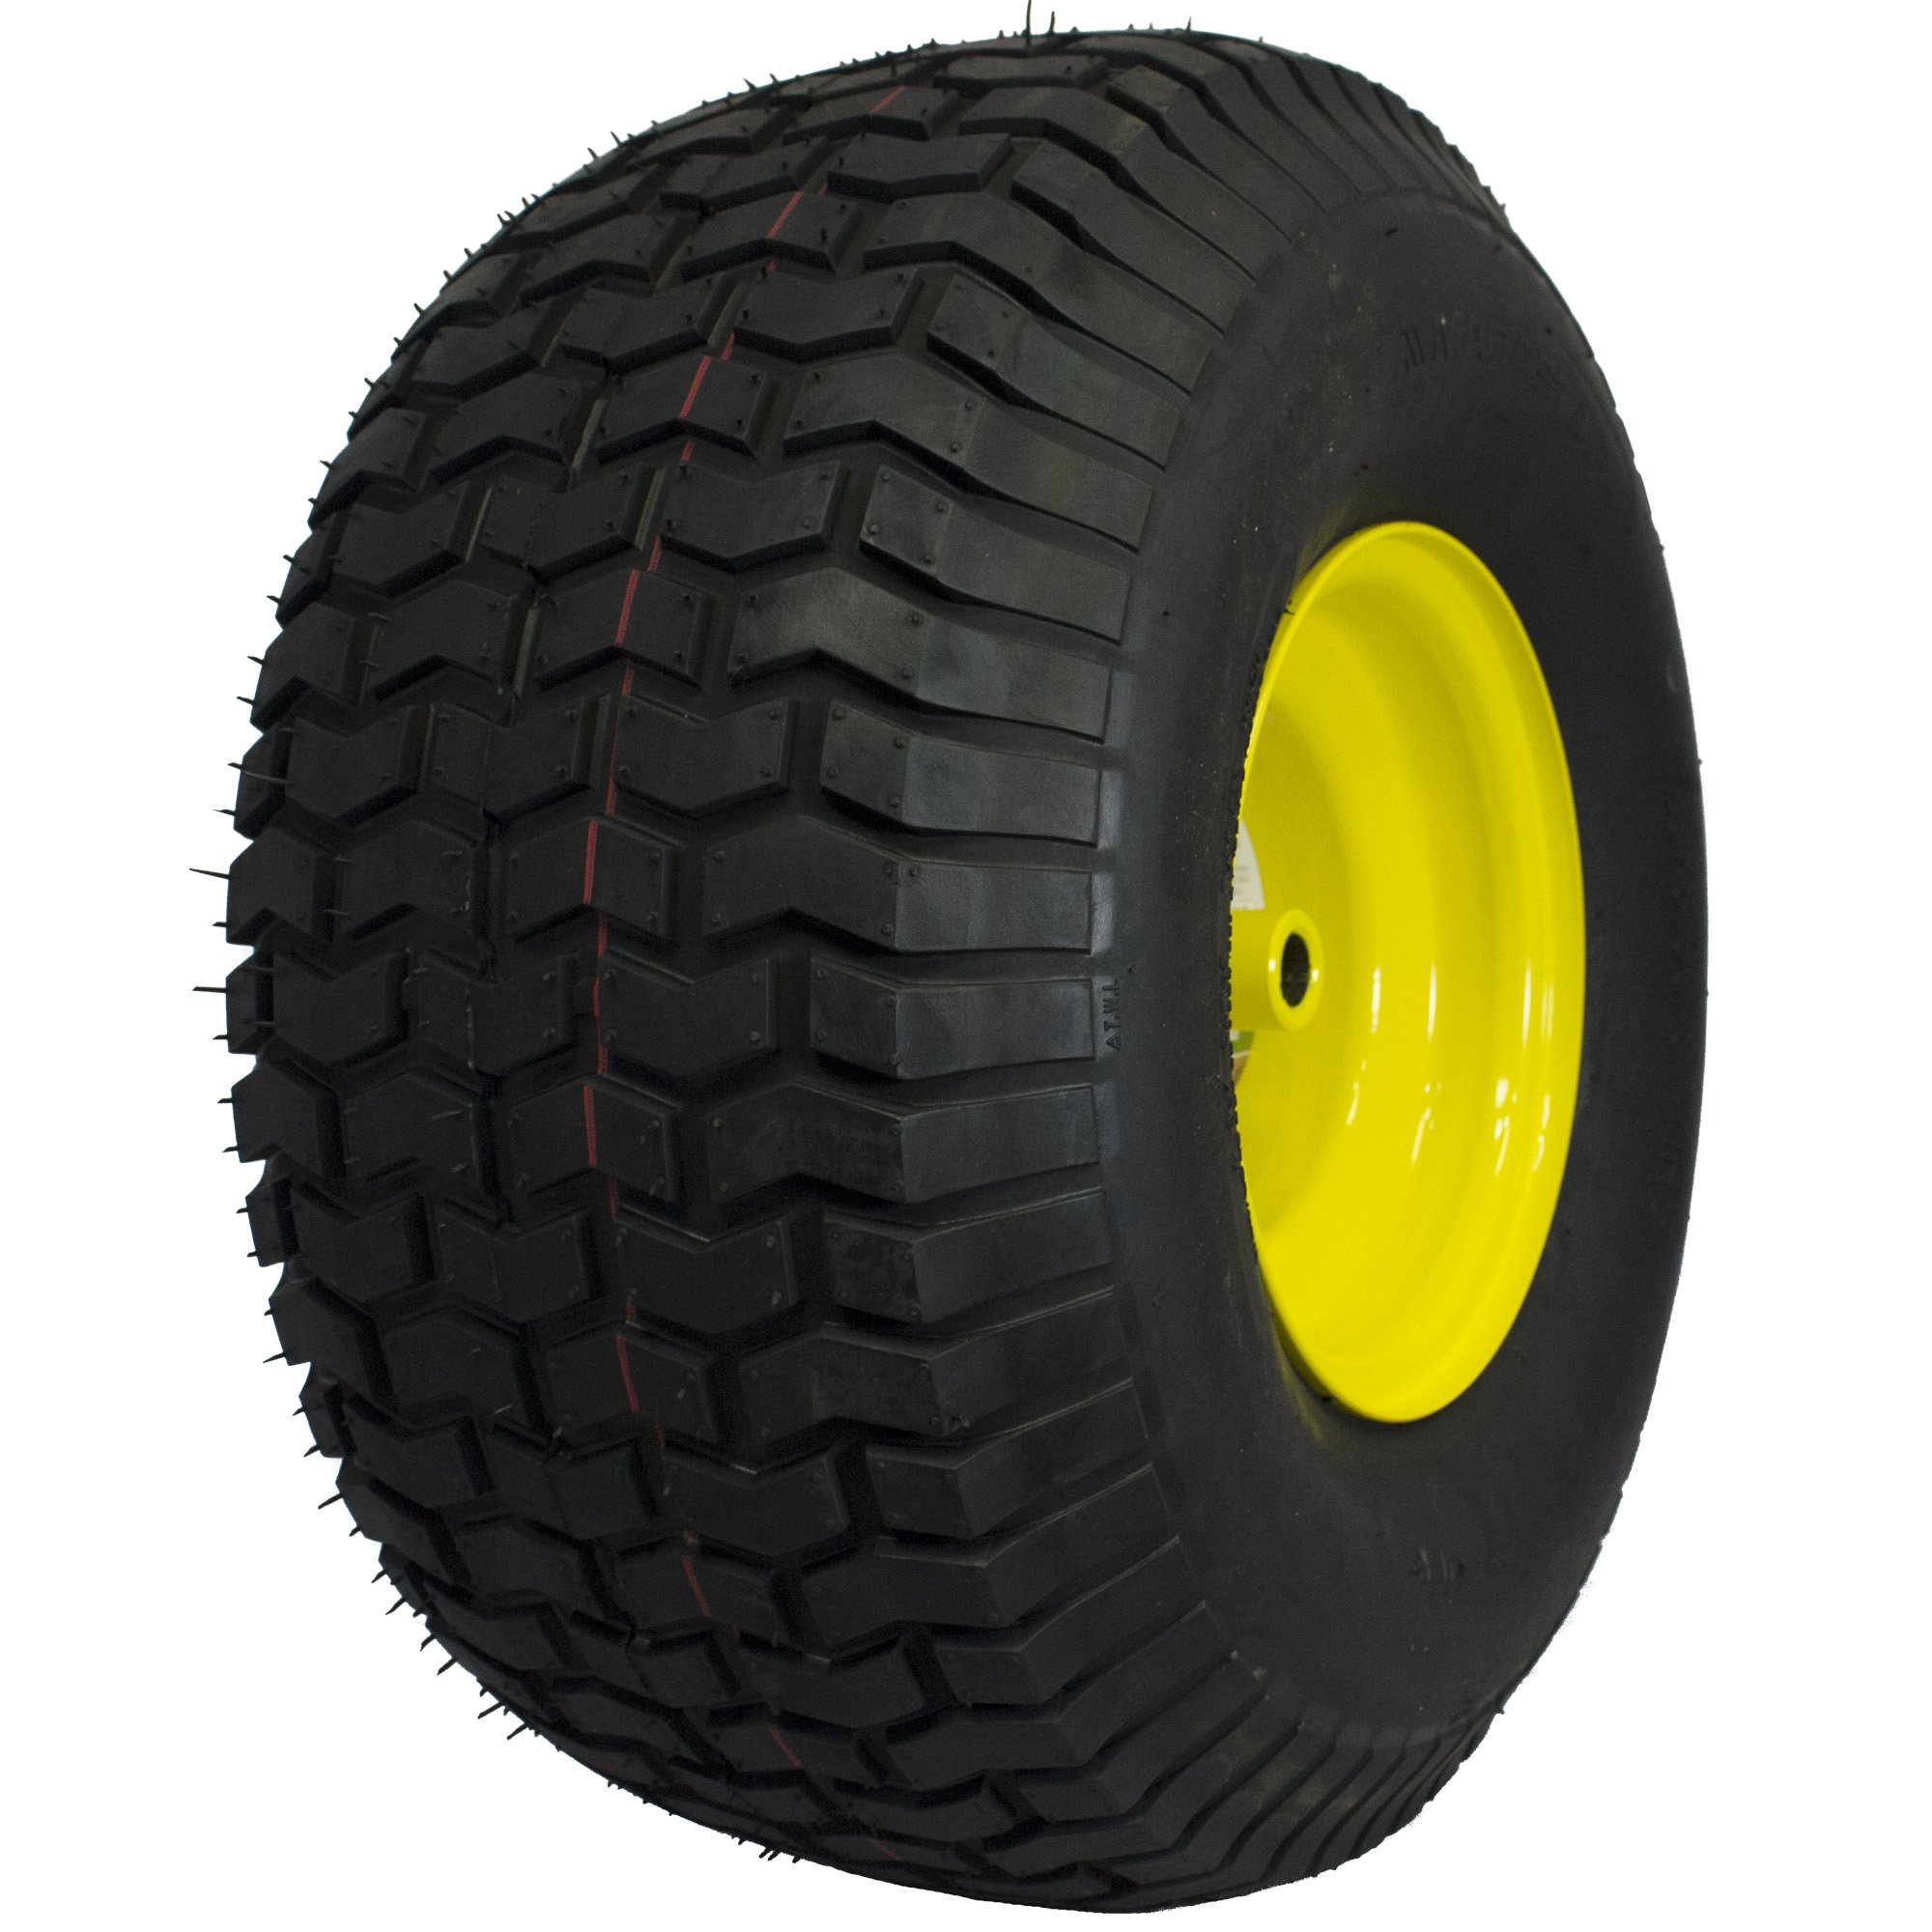 MARASTAR 21424 20X8.00-8 Rear Tire Assembly Replacement for John Deere Riding Mowers, Yellow by MARASTAR (Image #1)